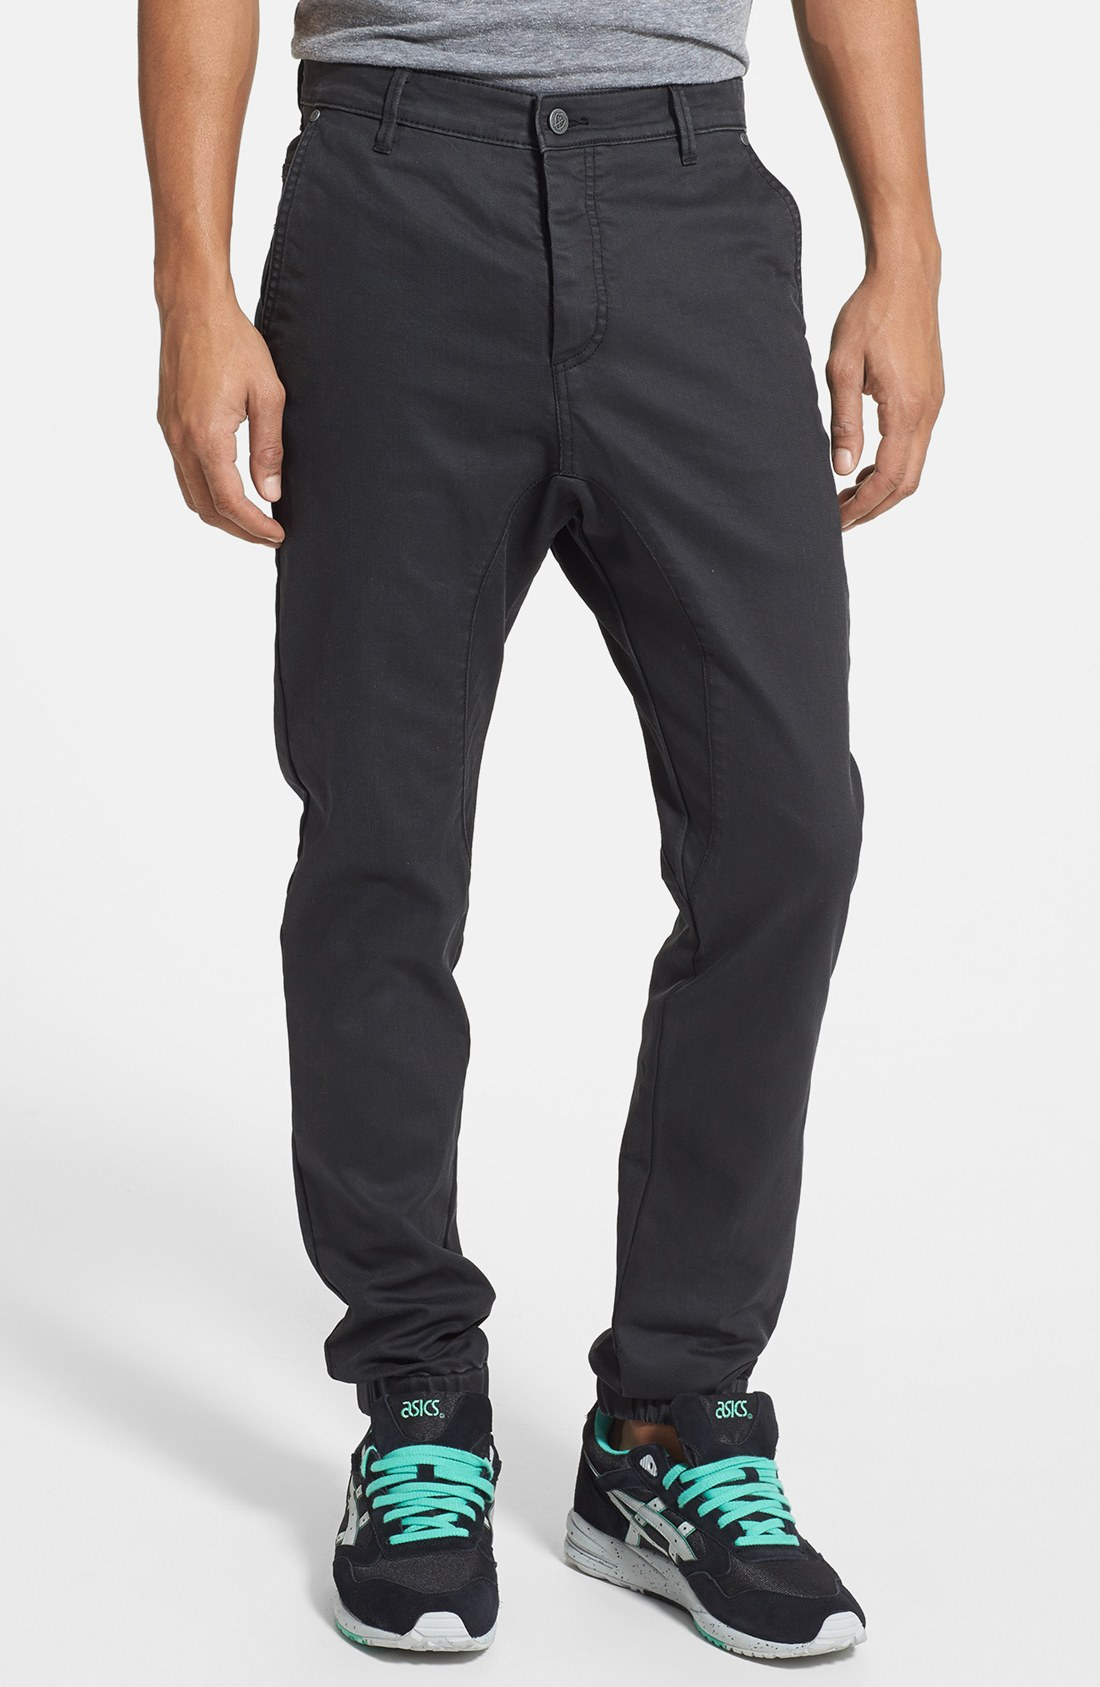 Champion jersey knit joggers with an elastic waist with drawstring, side seam pockets, a Champion logo detail and a tapered leg. Jogger pants with an athletic fit are great for your next work out. 60% Cotton, 40% Polyester. 31 inch inseam.